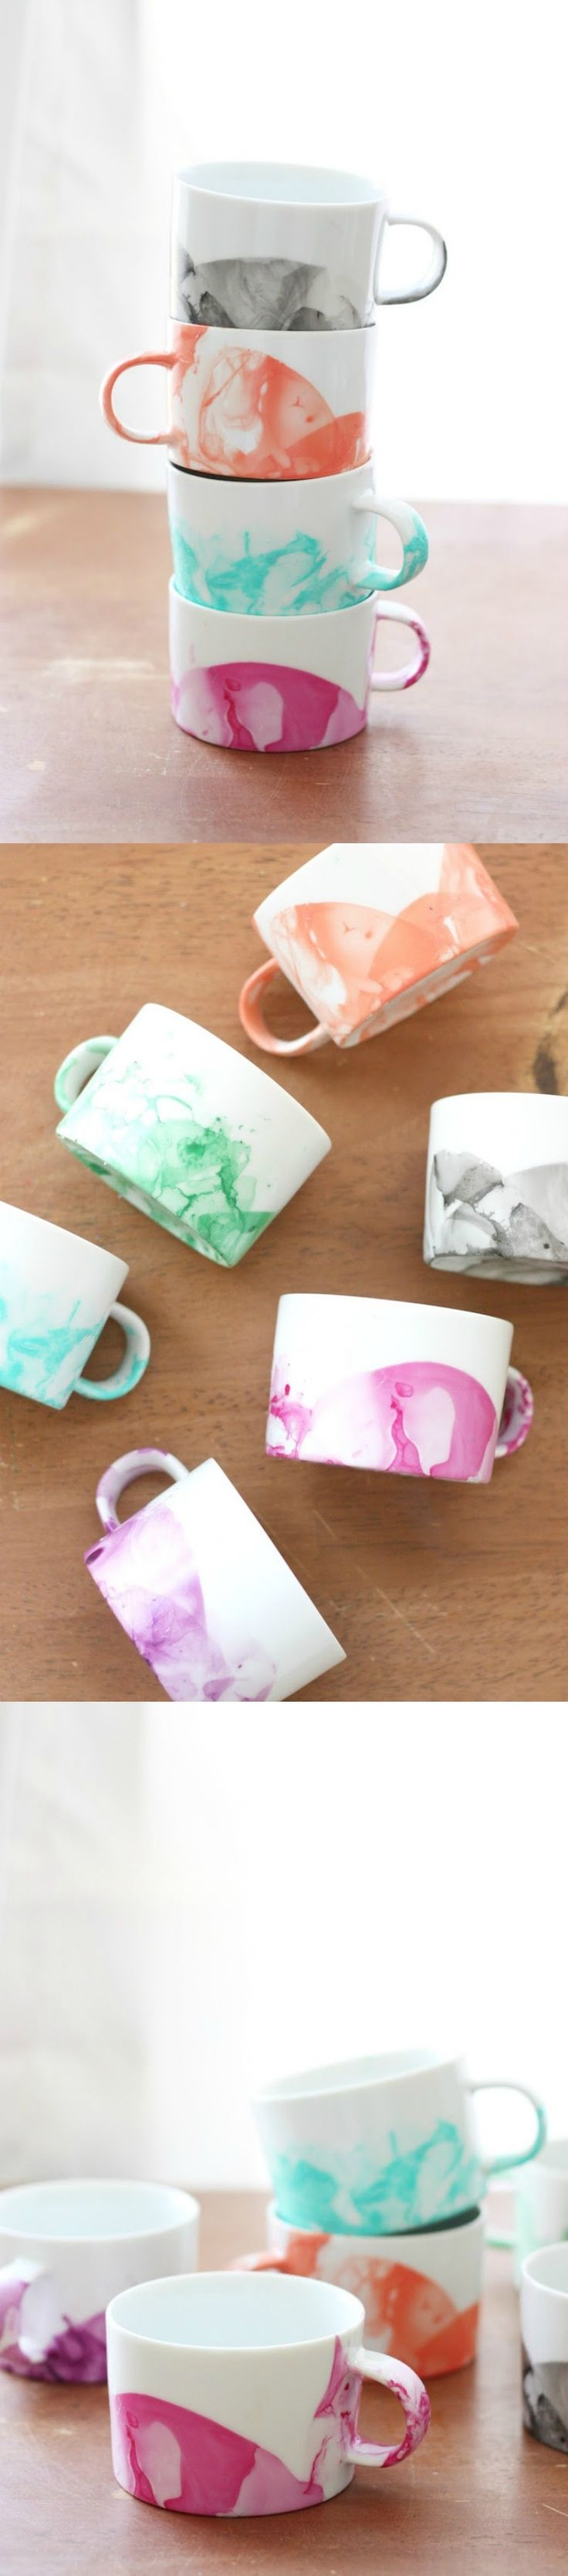 DIY marbled mugs with nail polish? It's easy and you can have gorgeous mugs in minutes that cost less than a dollar each!